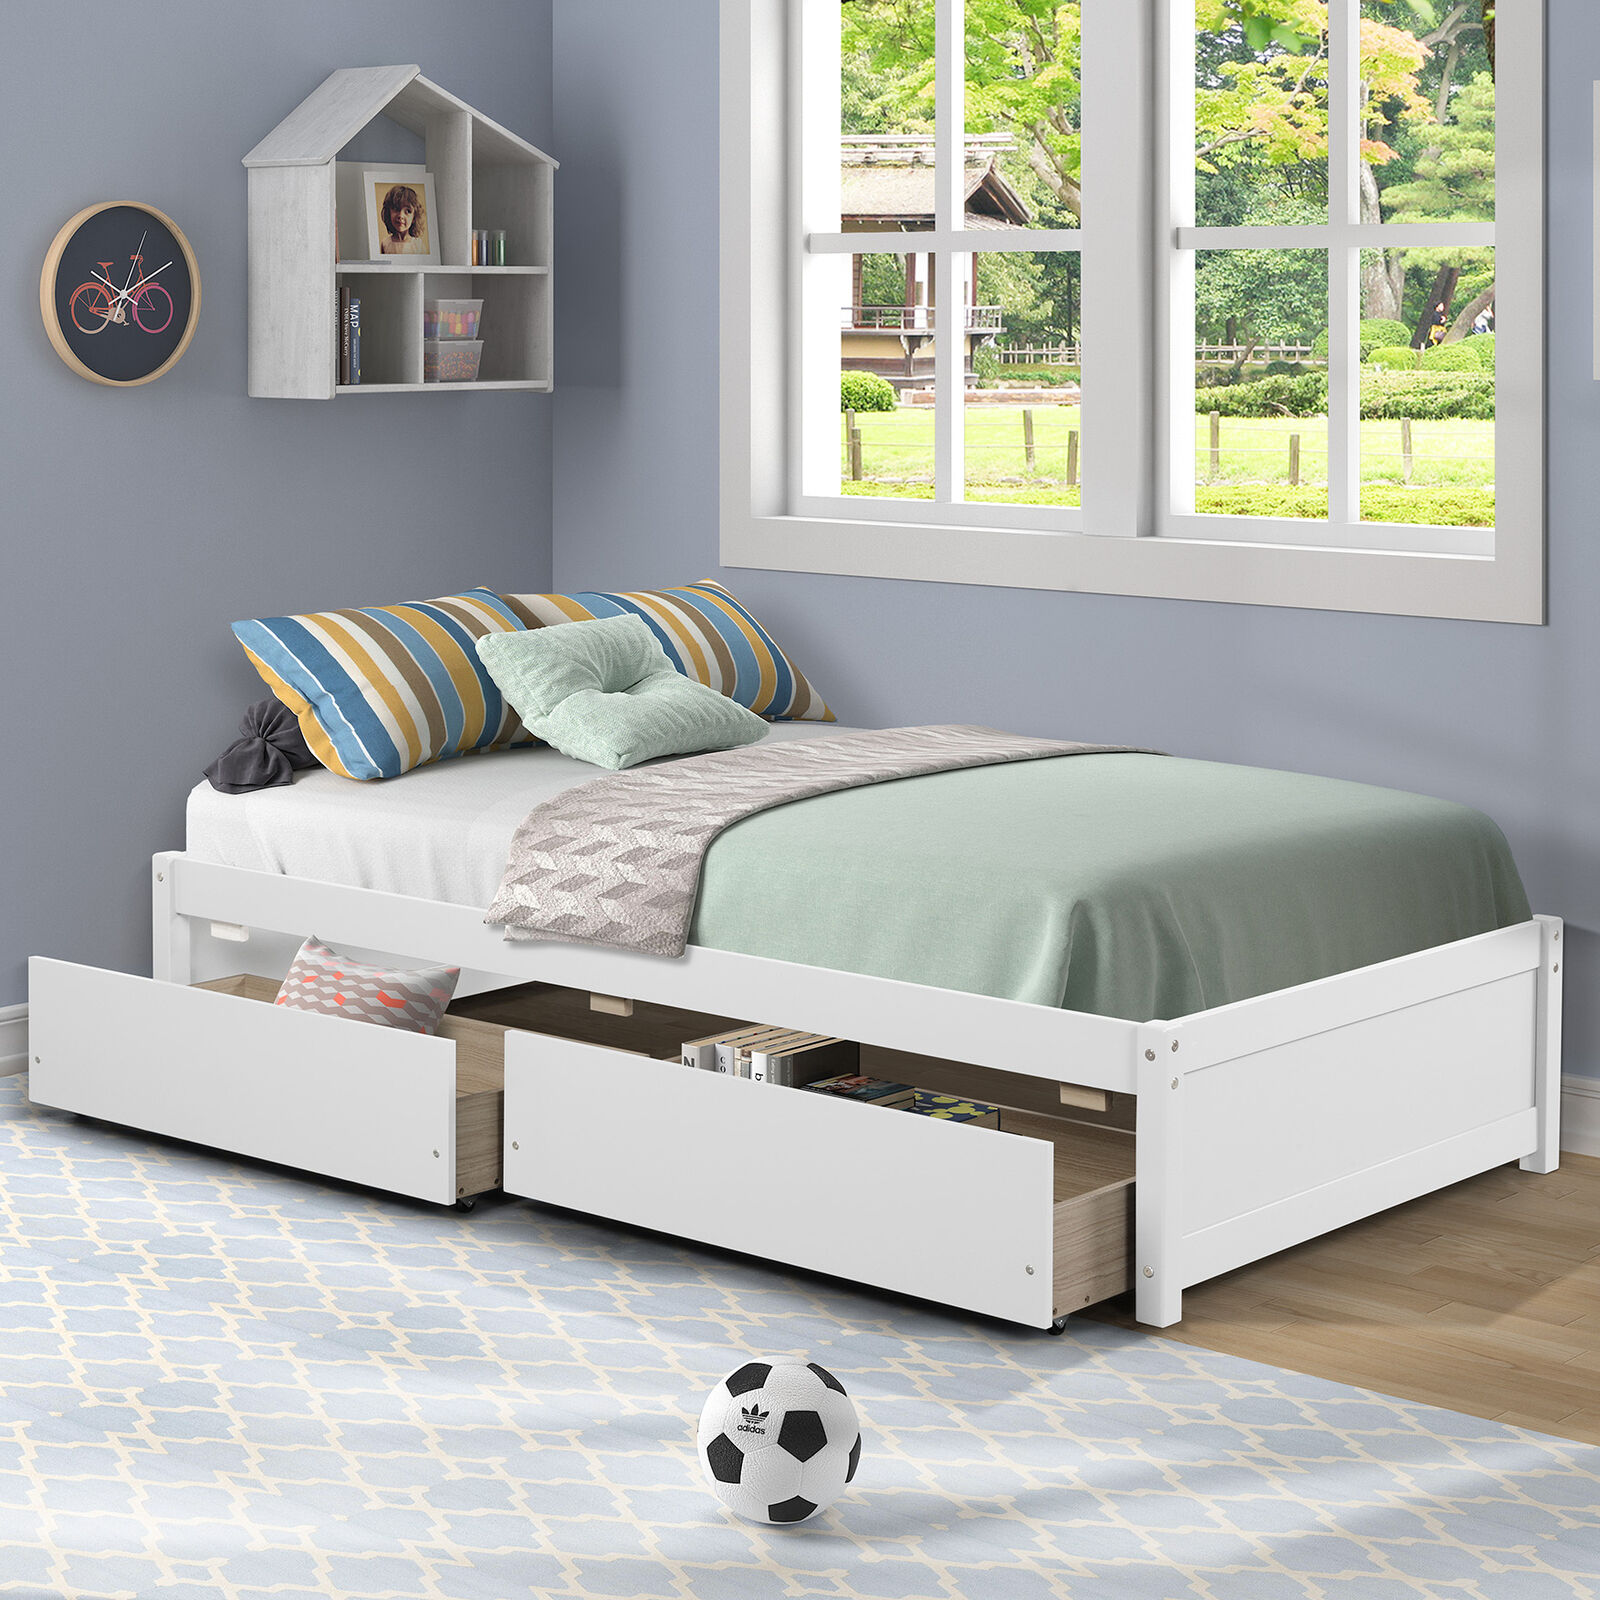 Ikea White Loft Bed With Drawers 2 Doors Twin For Sale Online Ebay